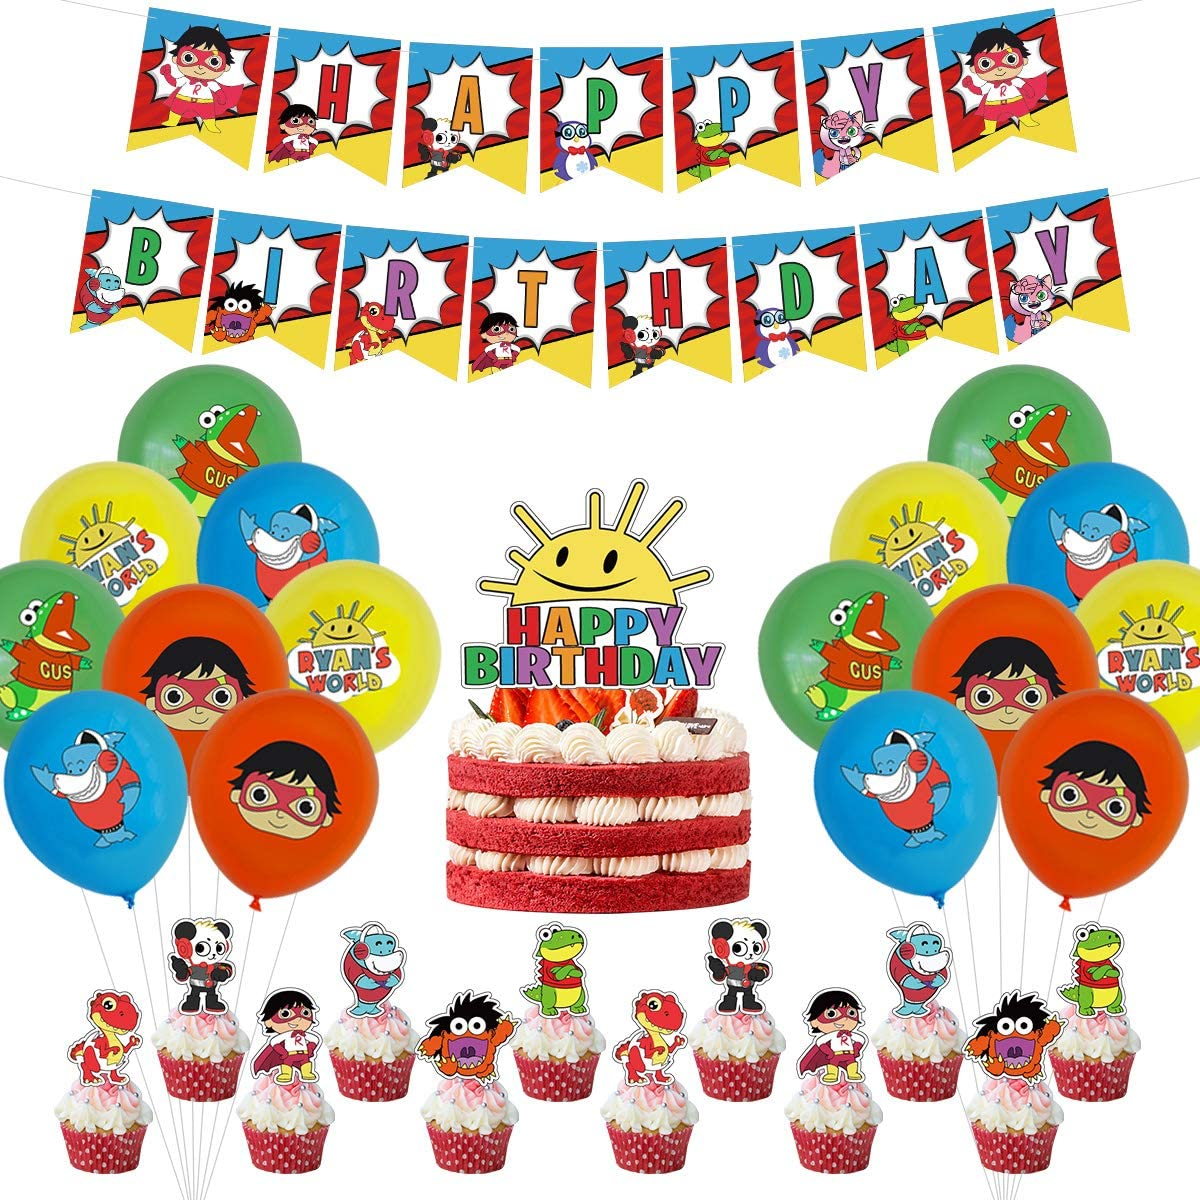 Ryans World Theme Birthday Party Supplies, Ryans World Theme Party Decorations Set include Latex Balloons, Happy Birthday Banner, Cake Topper for Ryans World Fans Birthday Party Decorations